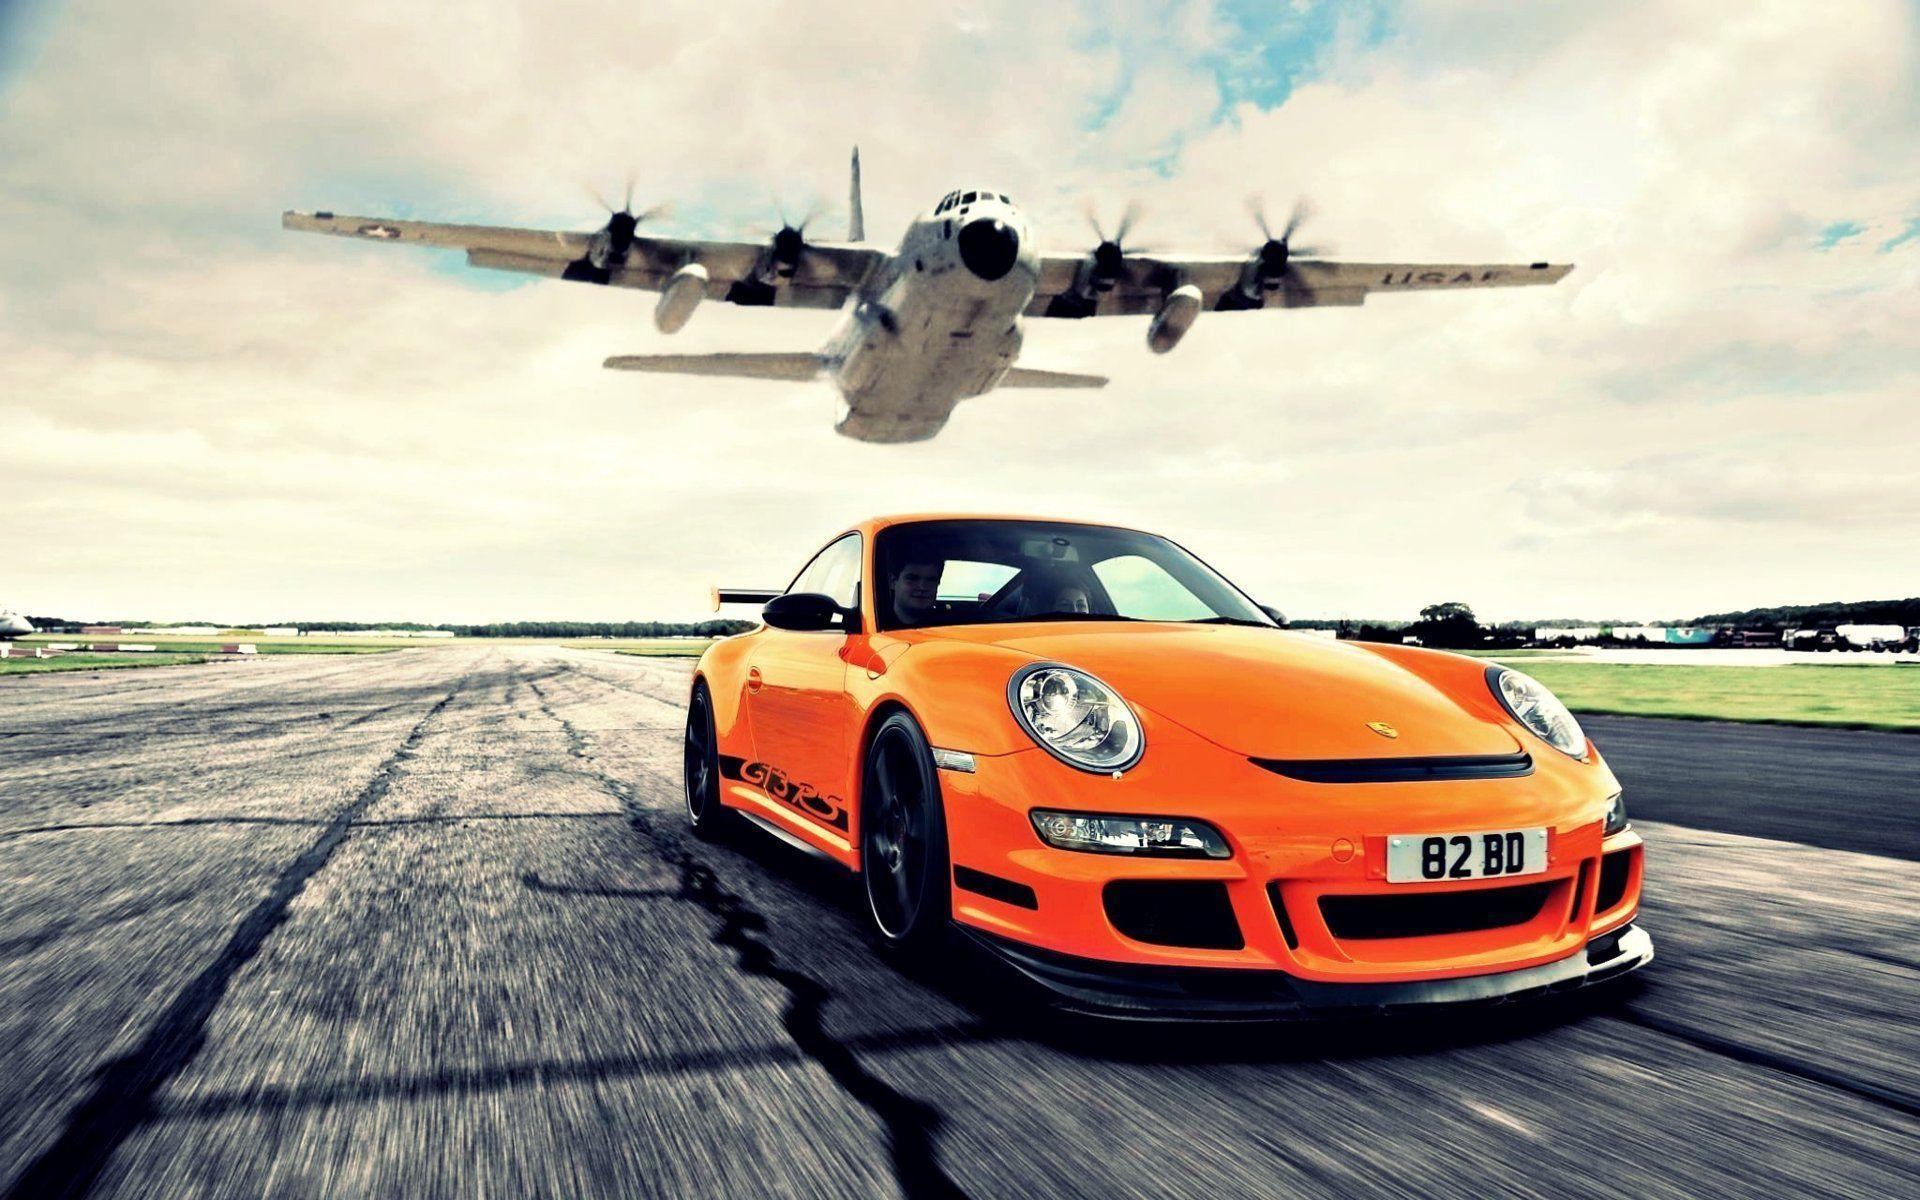 Image For > 2014 Porsche 911 Gt3 Rs Wallpapers